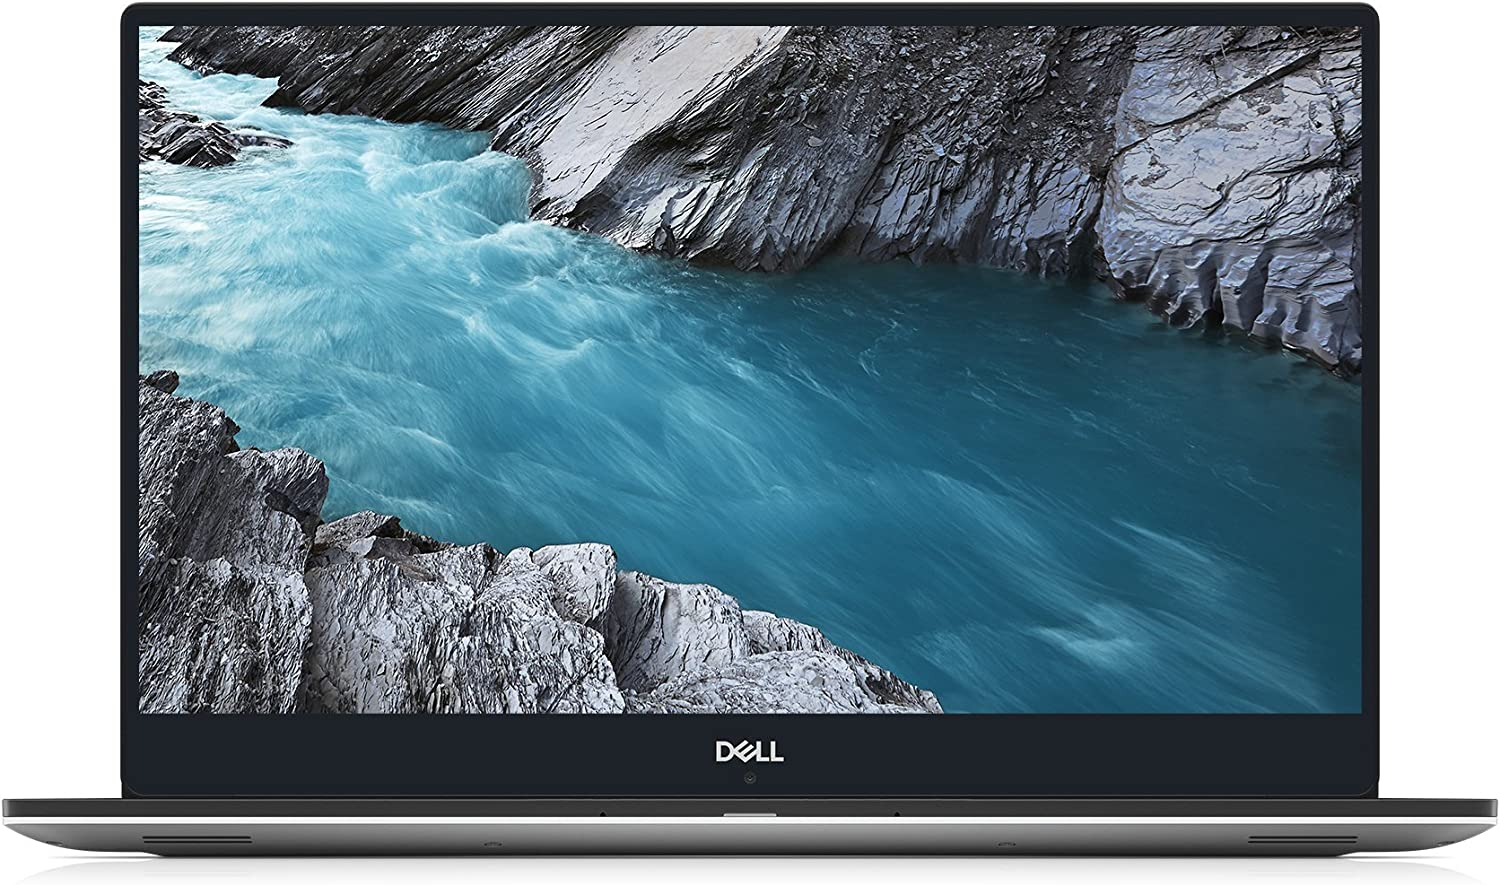 Dell XPS 15 9570-8th Generation Intel Core i7-8750H Processor, 4k Touchscreen display, 16GB DDR4 2666MHz RAM, 512GB SSD, NVIDIA GeForce GTX 1050Ti, Windows 10 Home (Renewed)